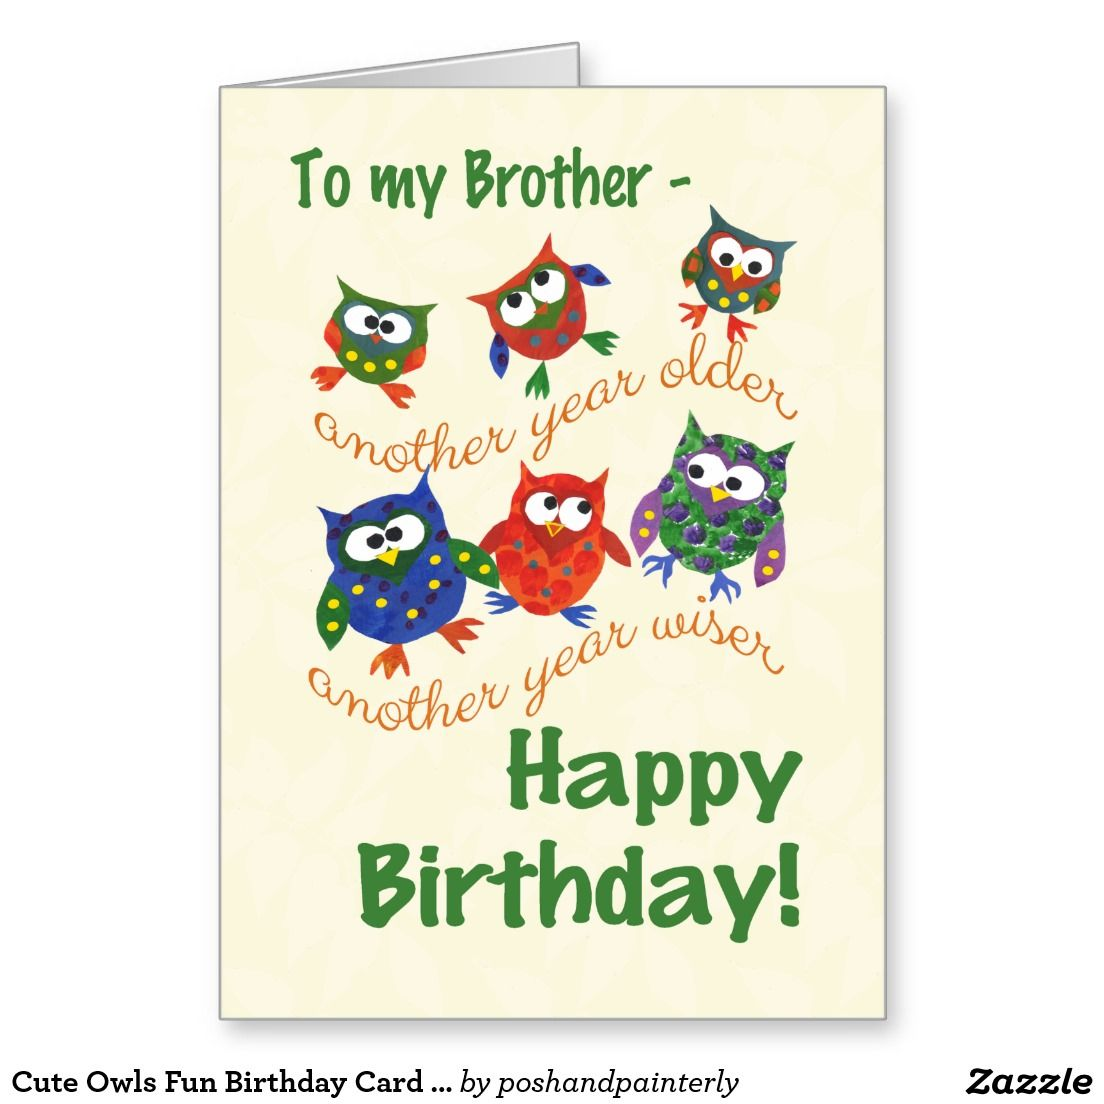 Cute Owls Fun Birthday Card For A Brother Up To 3 50 Http Www